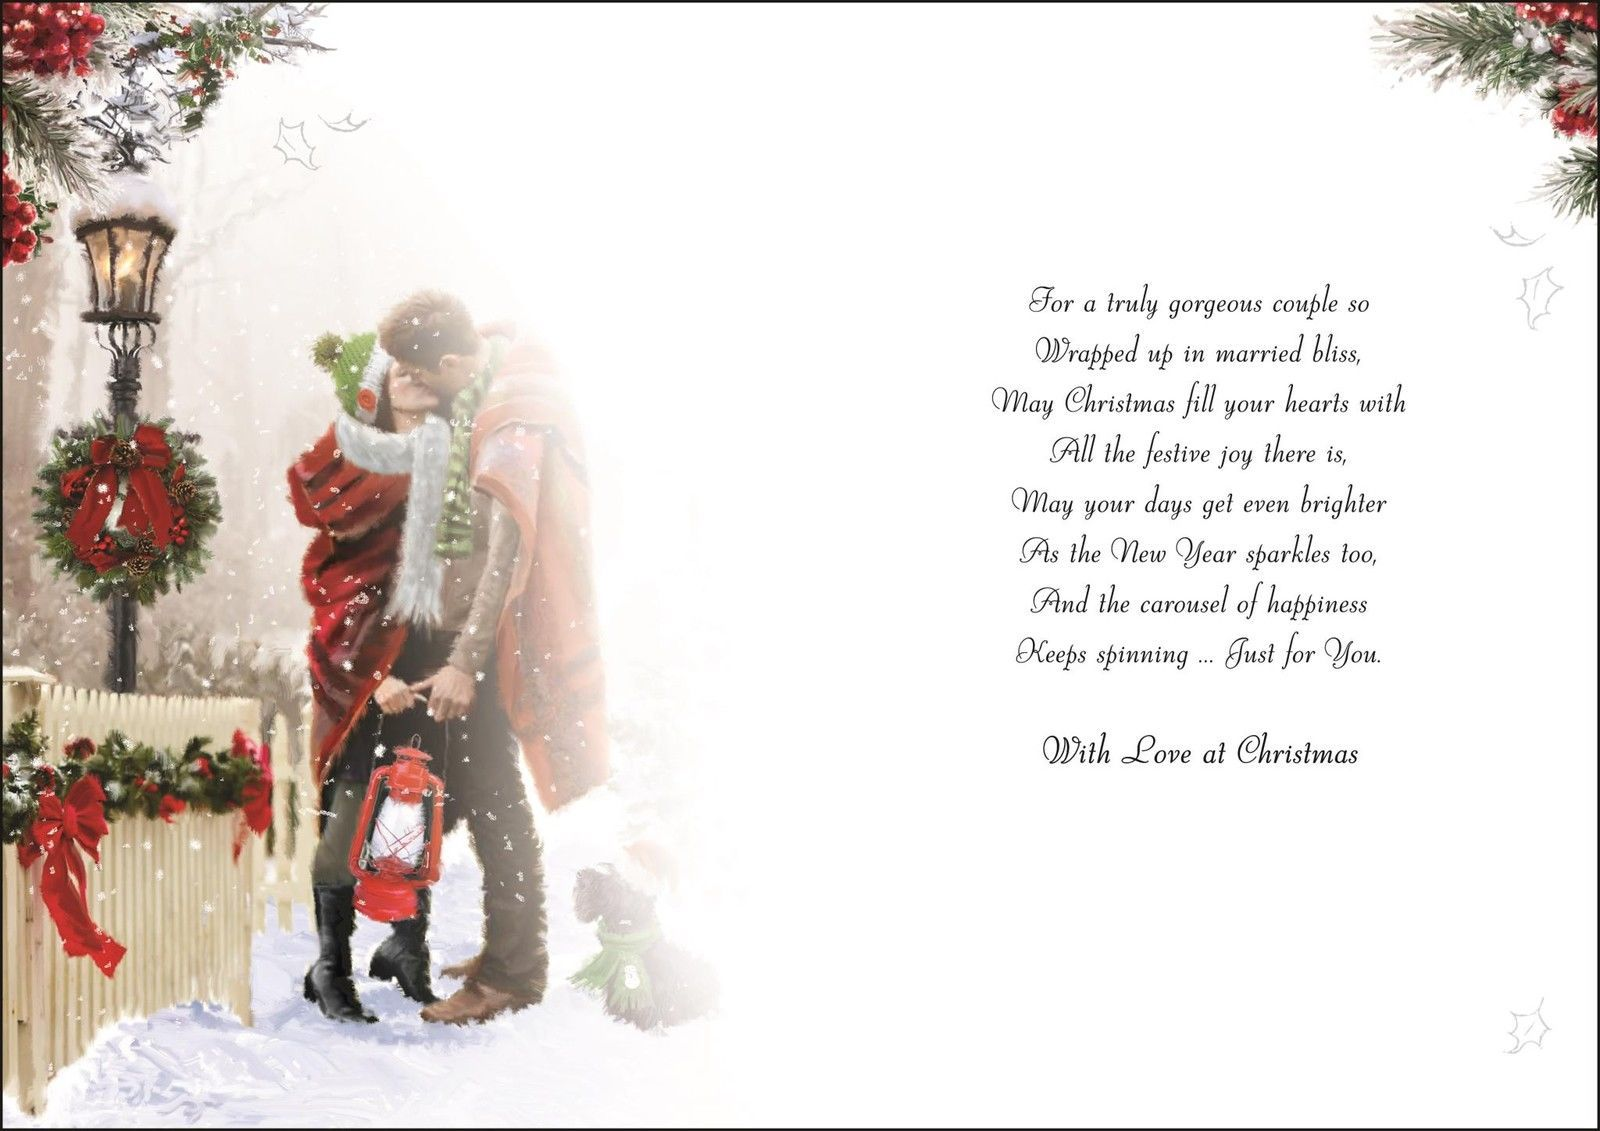 To A Lovely Daughter and Son In Law Christmas Card Lovely Verse